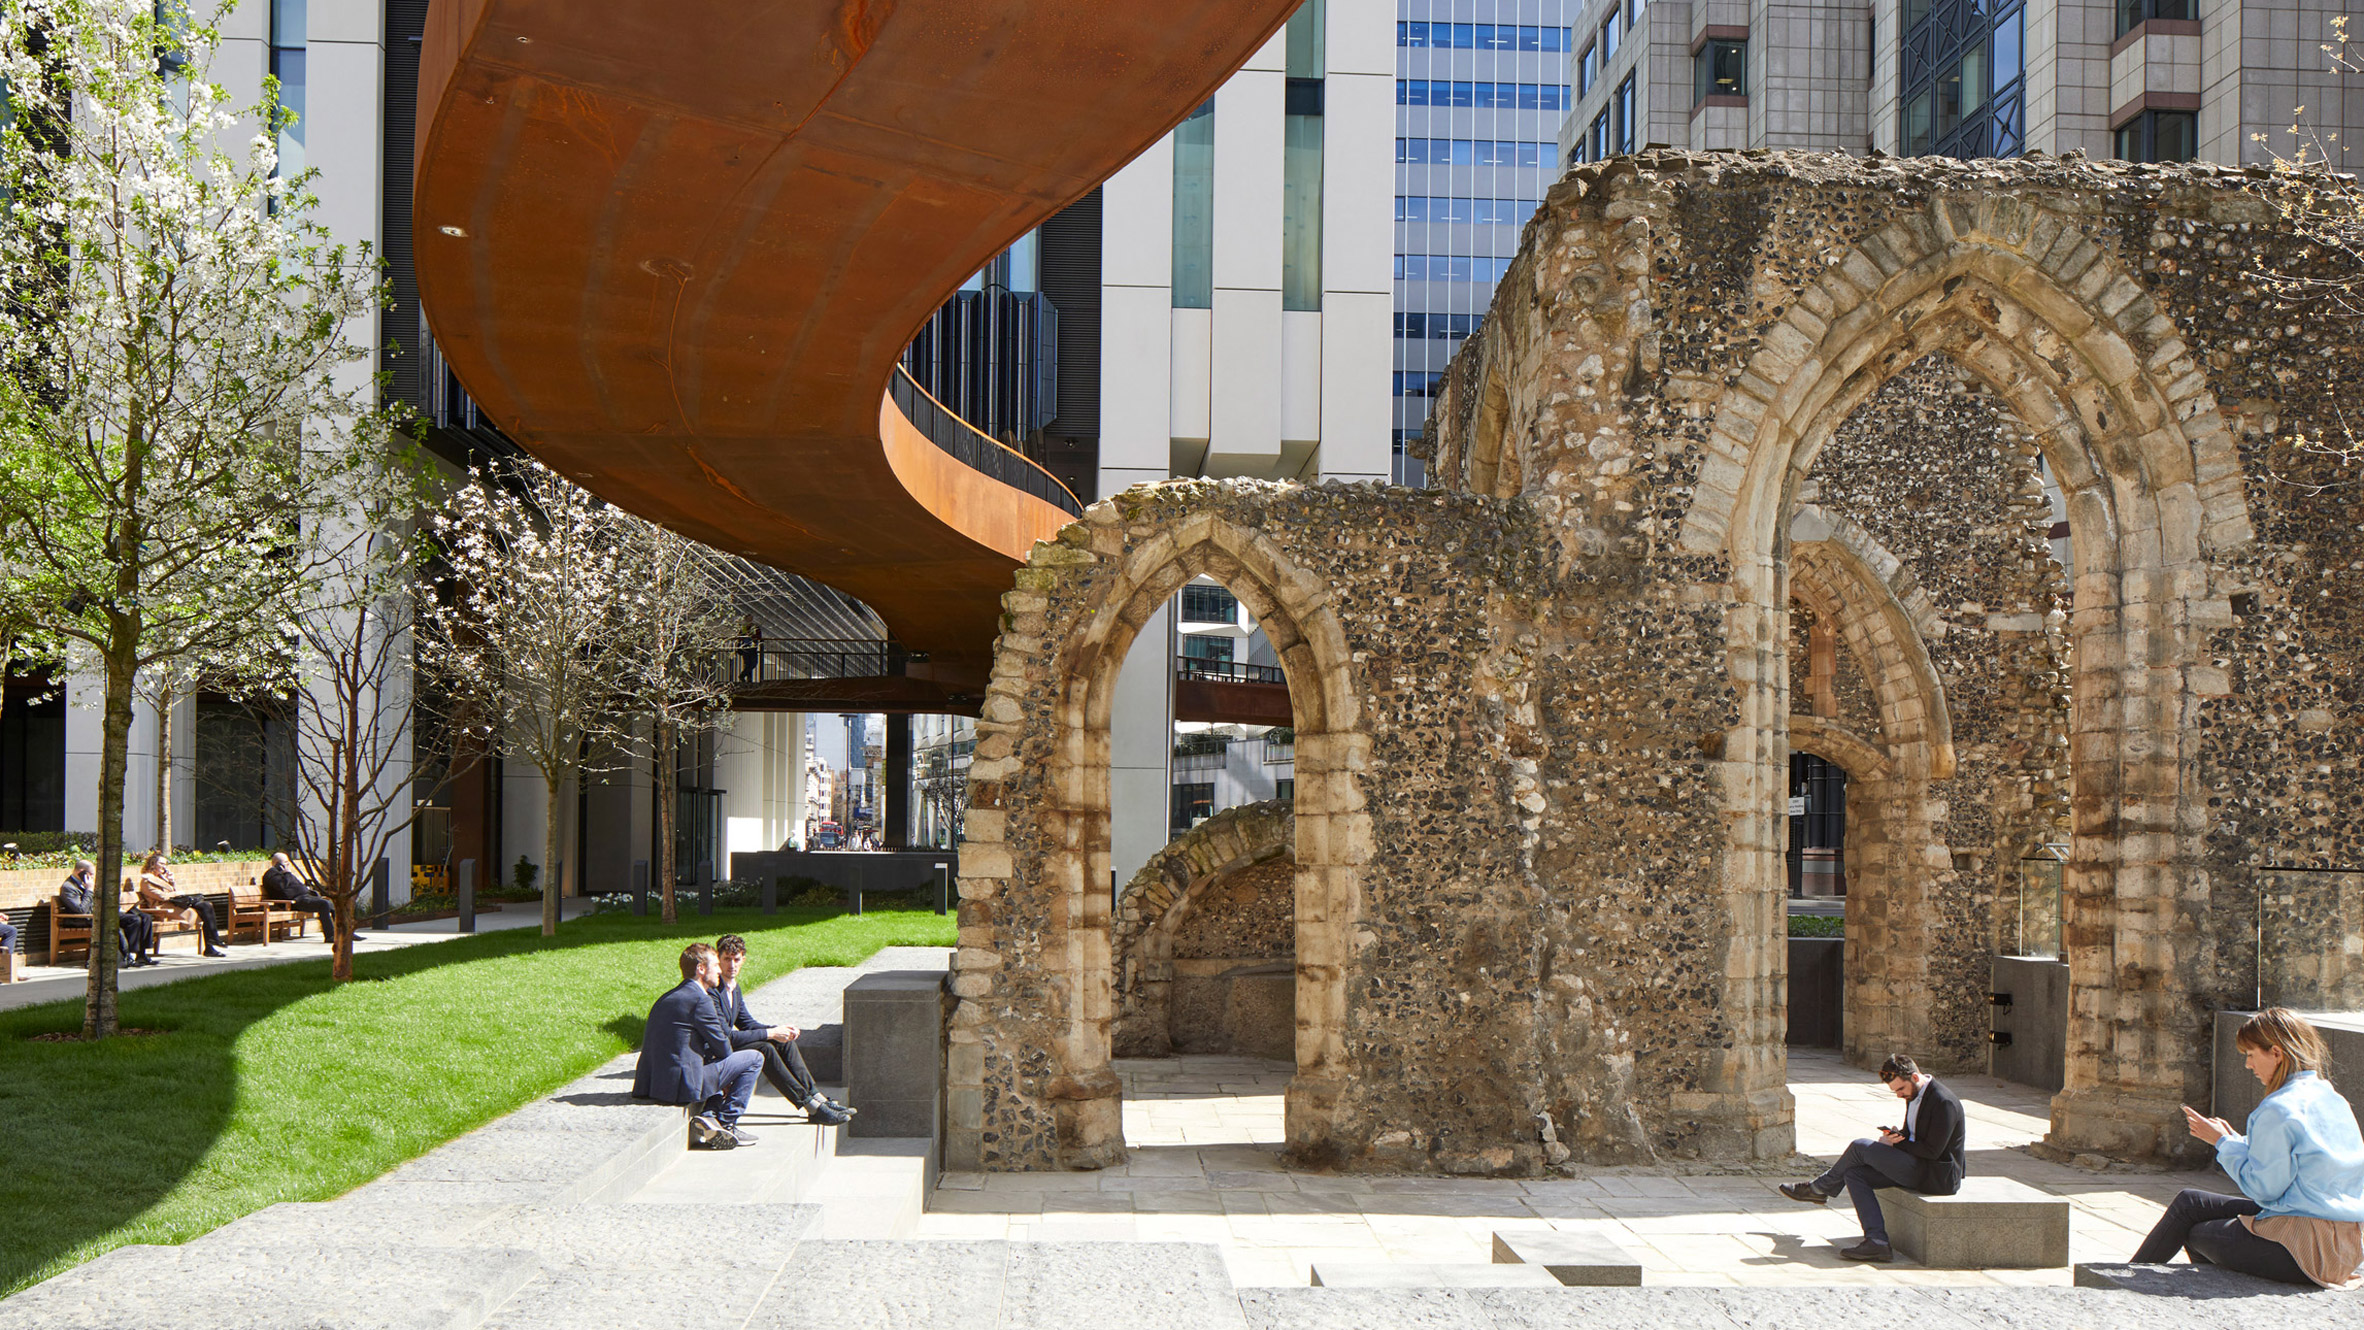 Make inserts public gardens between office towers at London Wall